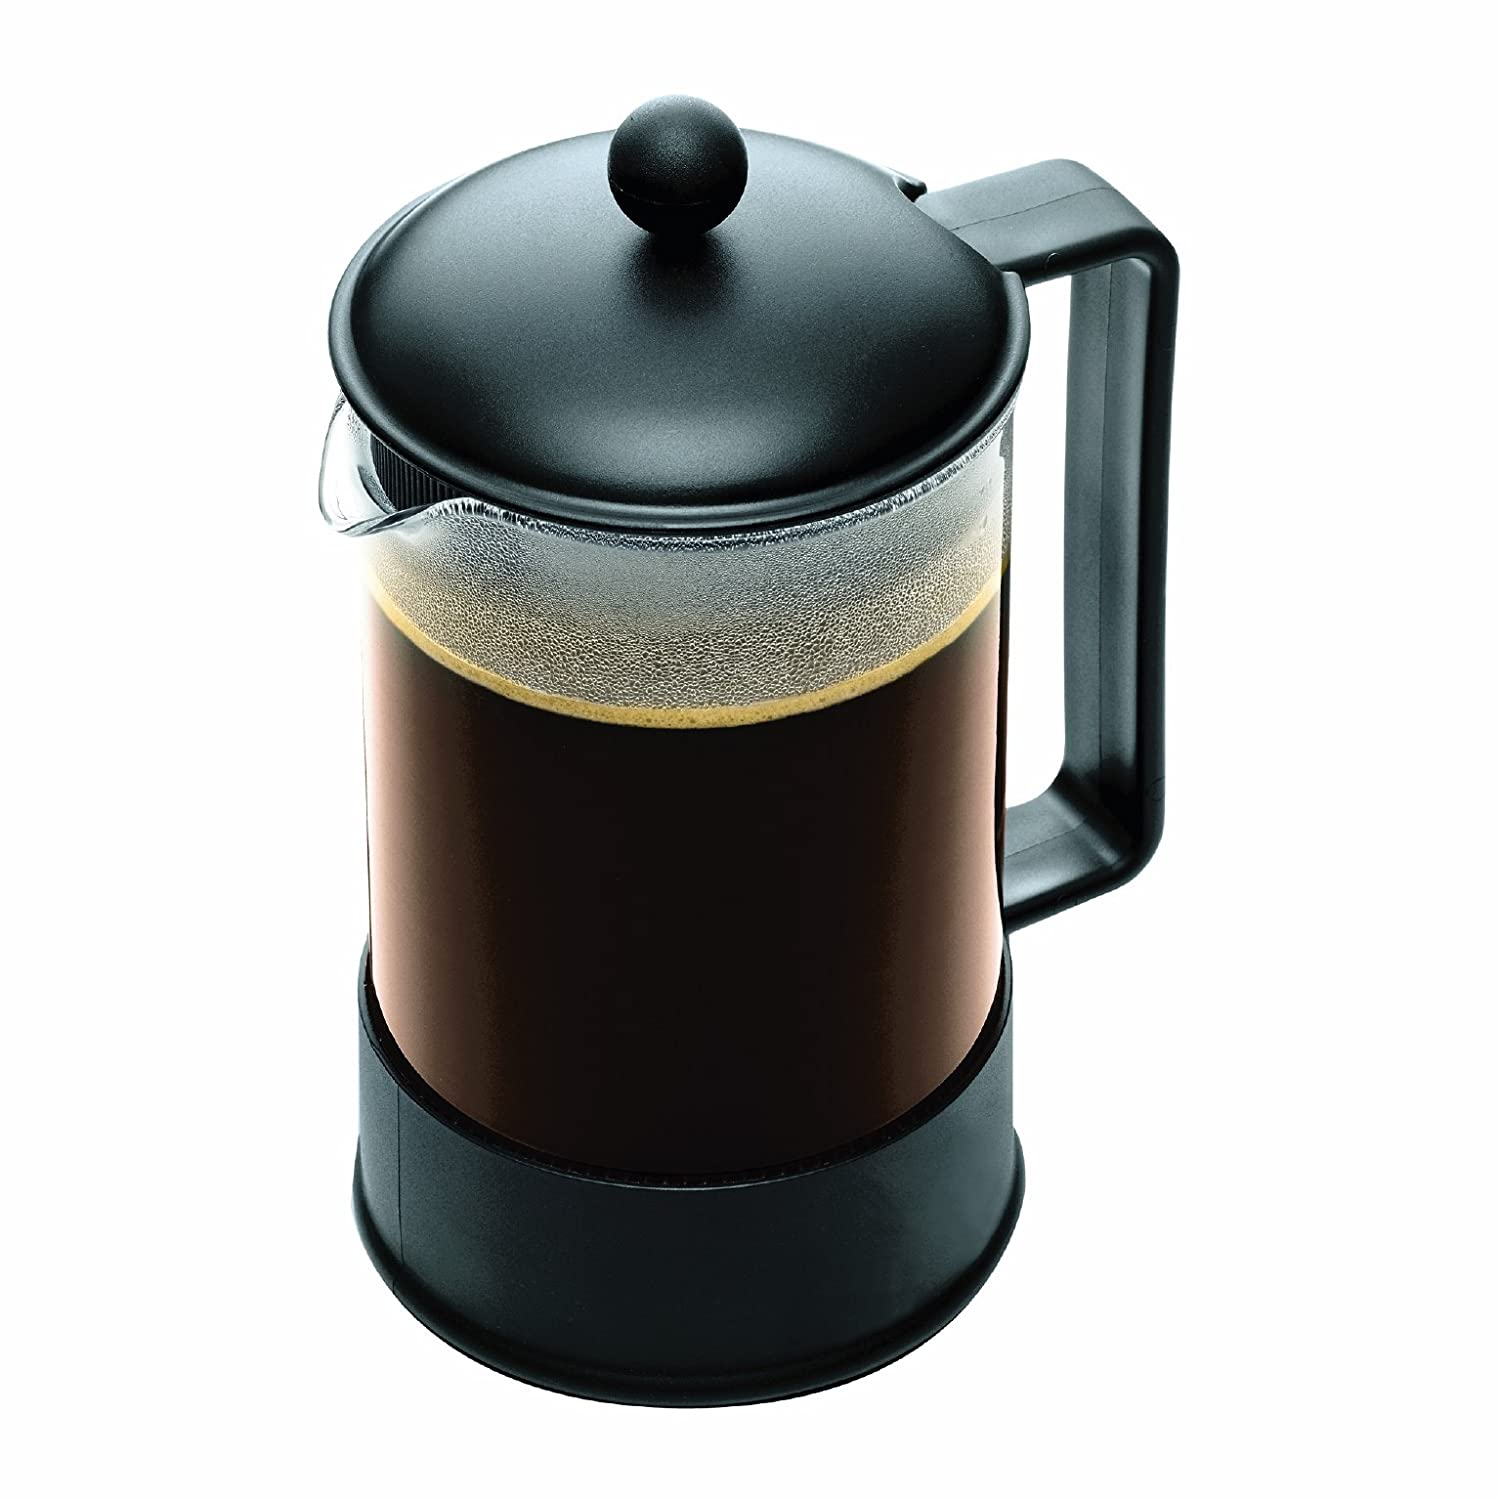 French Press Coffee Maker Cholesterol : New Bodum Brazil 1 1 2 Liter French Press Coffee Maker 12 Cup Black Free SHIP eBay